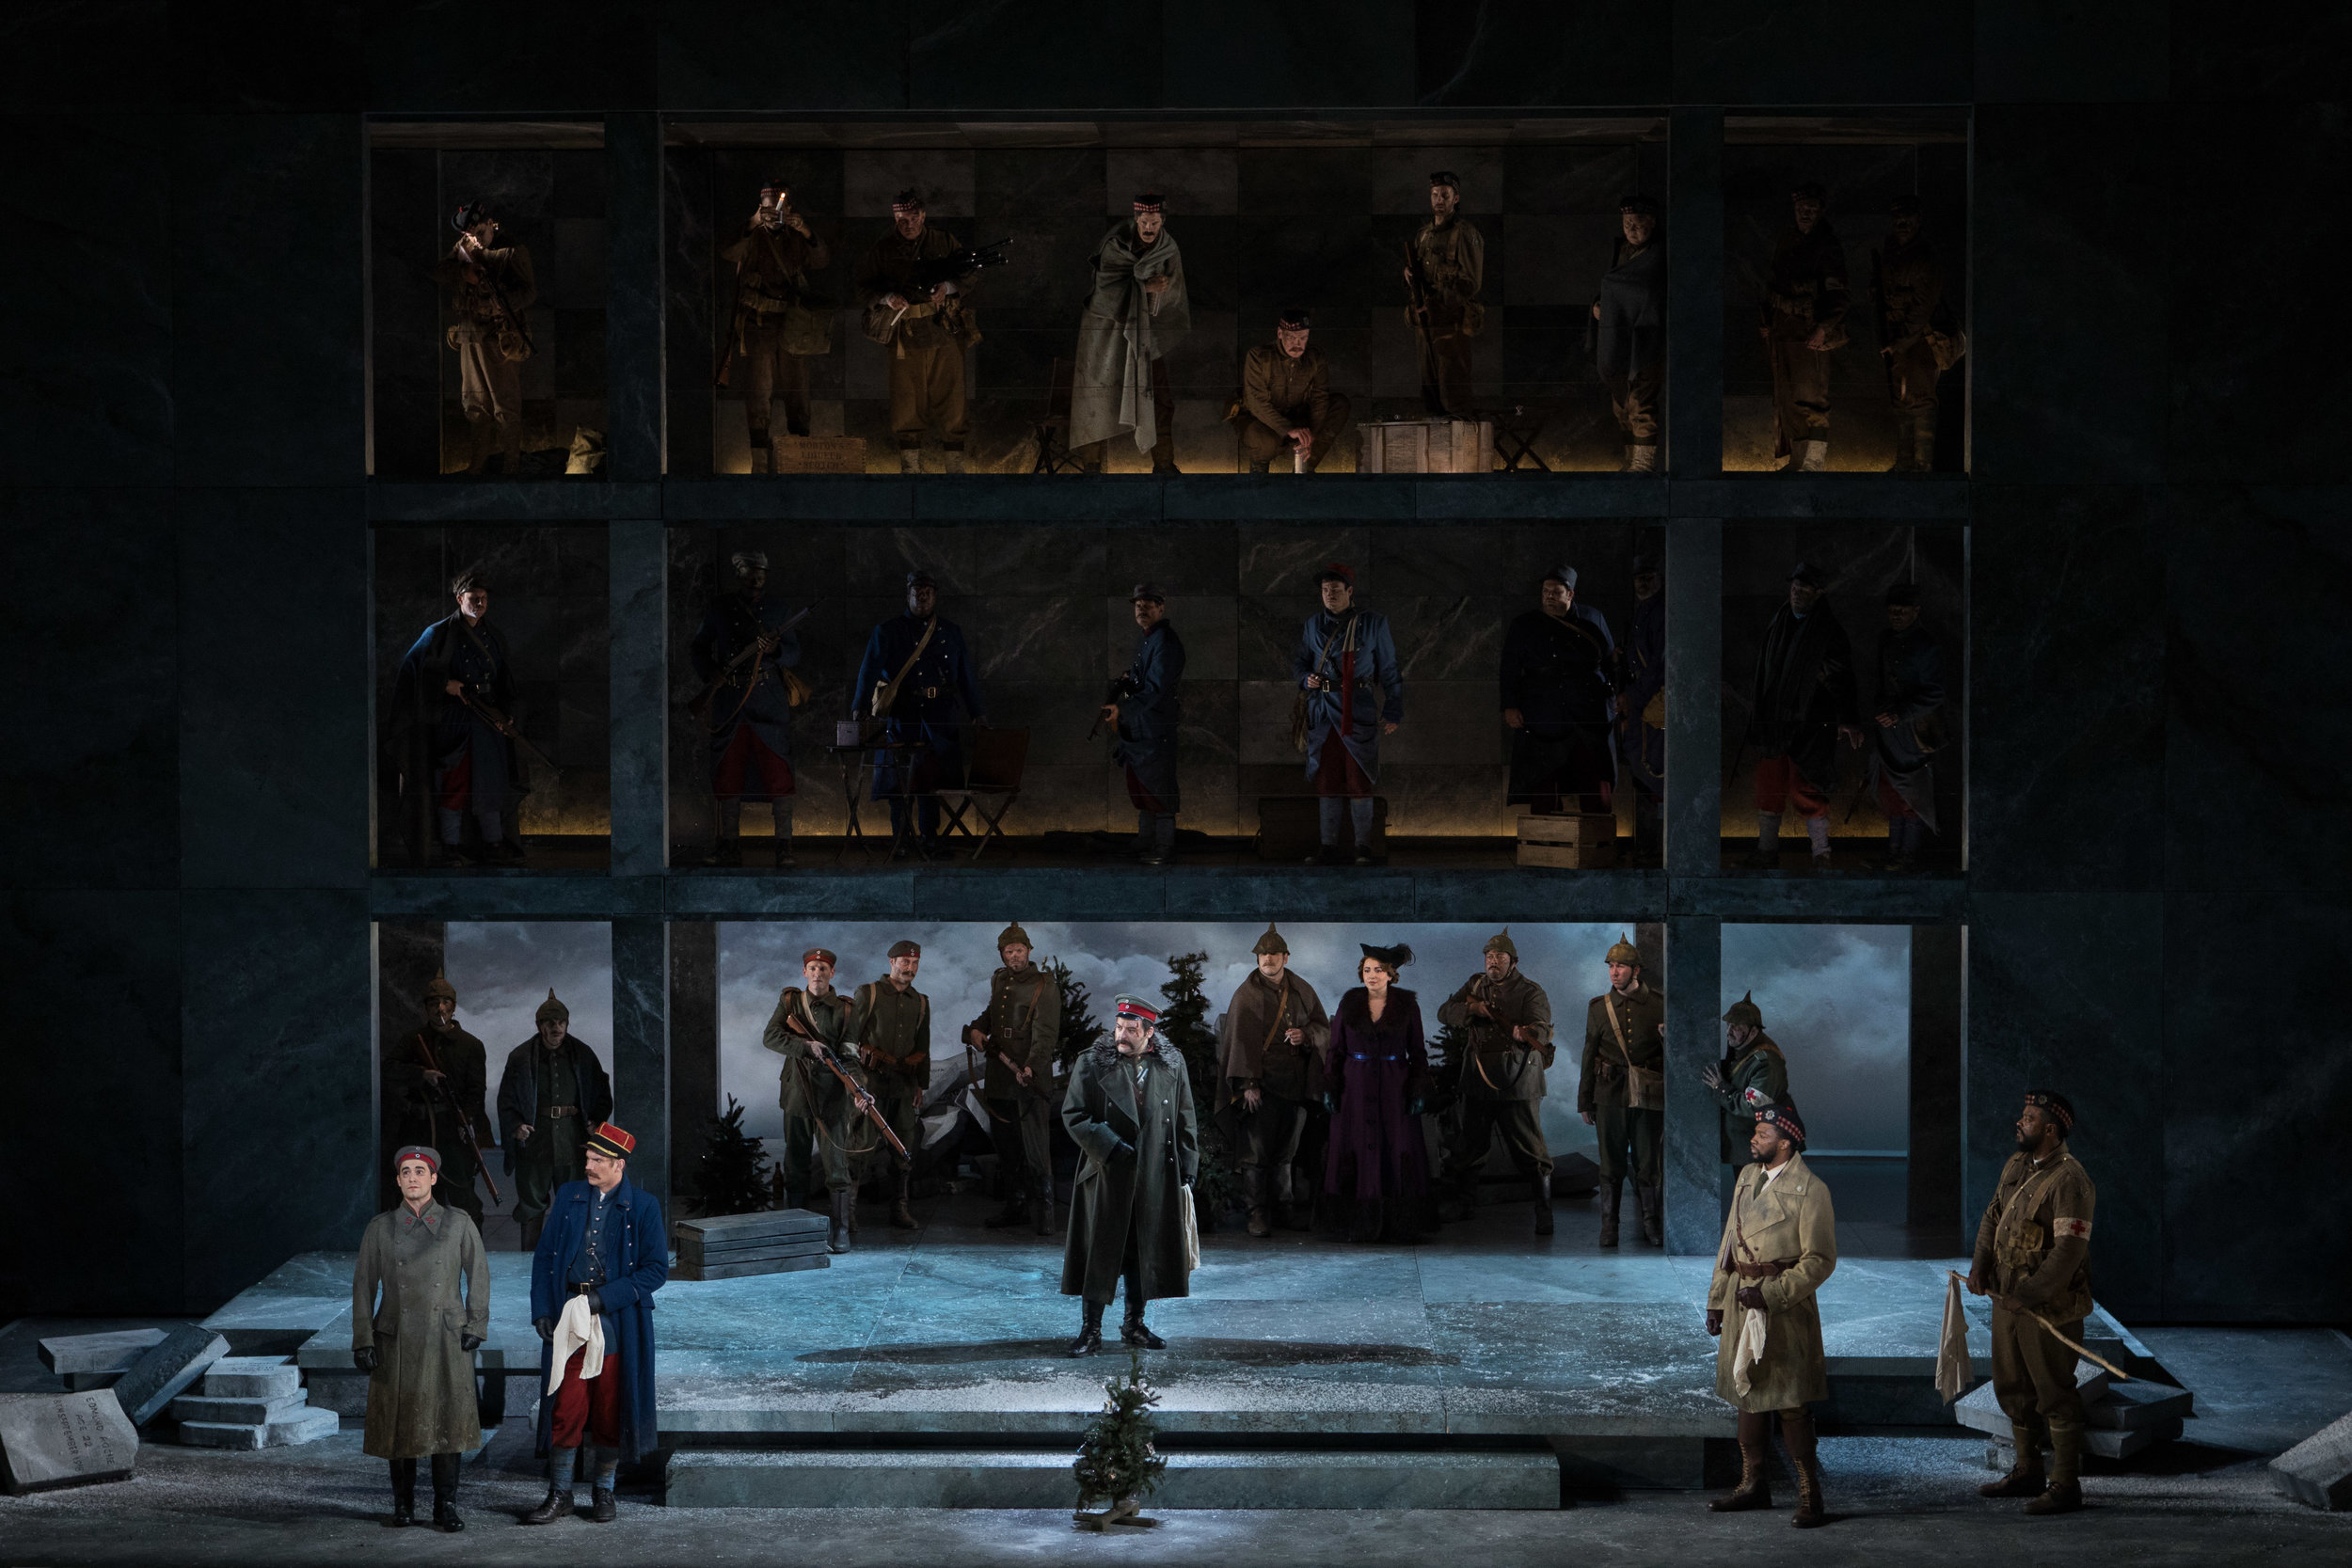 The truce begins for the men in three trenches. Photo by Teresa Wood; courtesy of Washington National Opera.